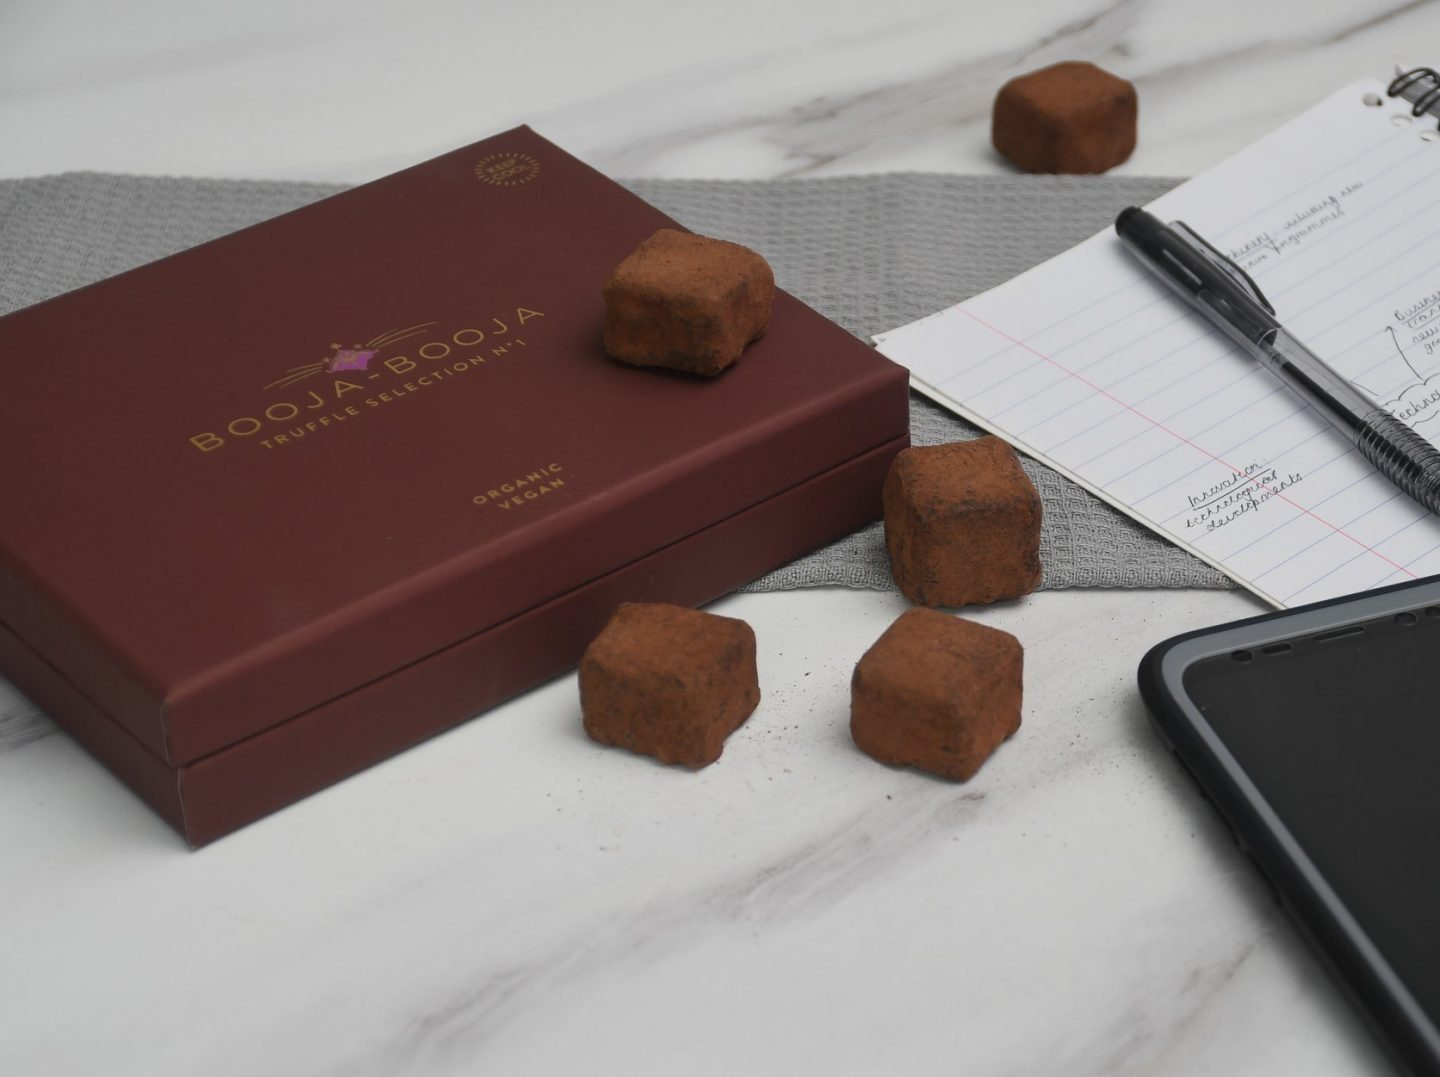 A box of chocolates on a counter next to a pen and paper. There are chocolate truffles scattered around